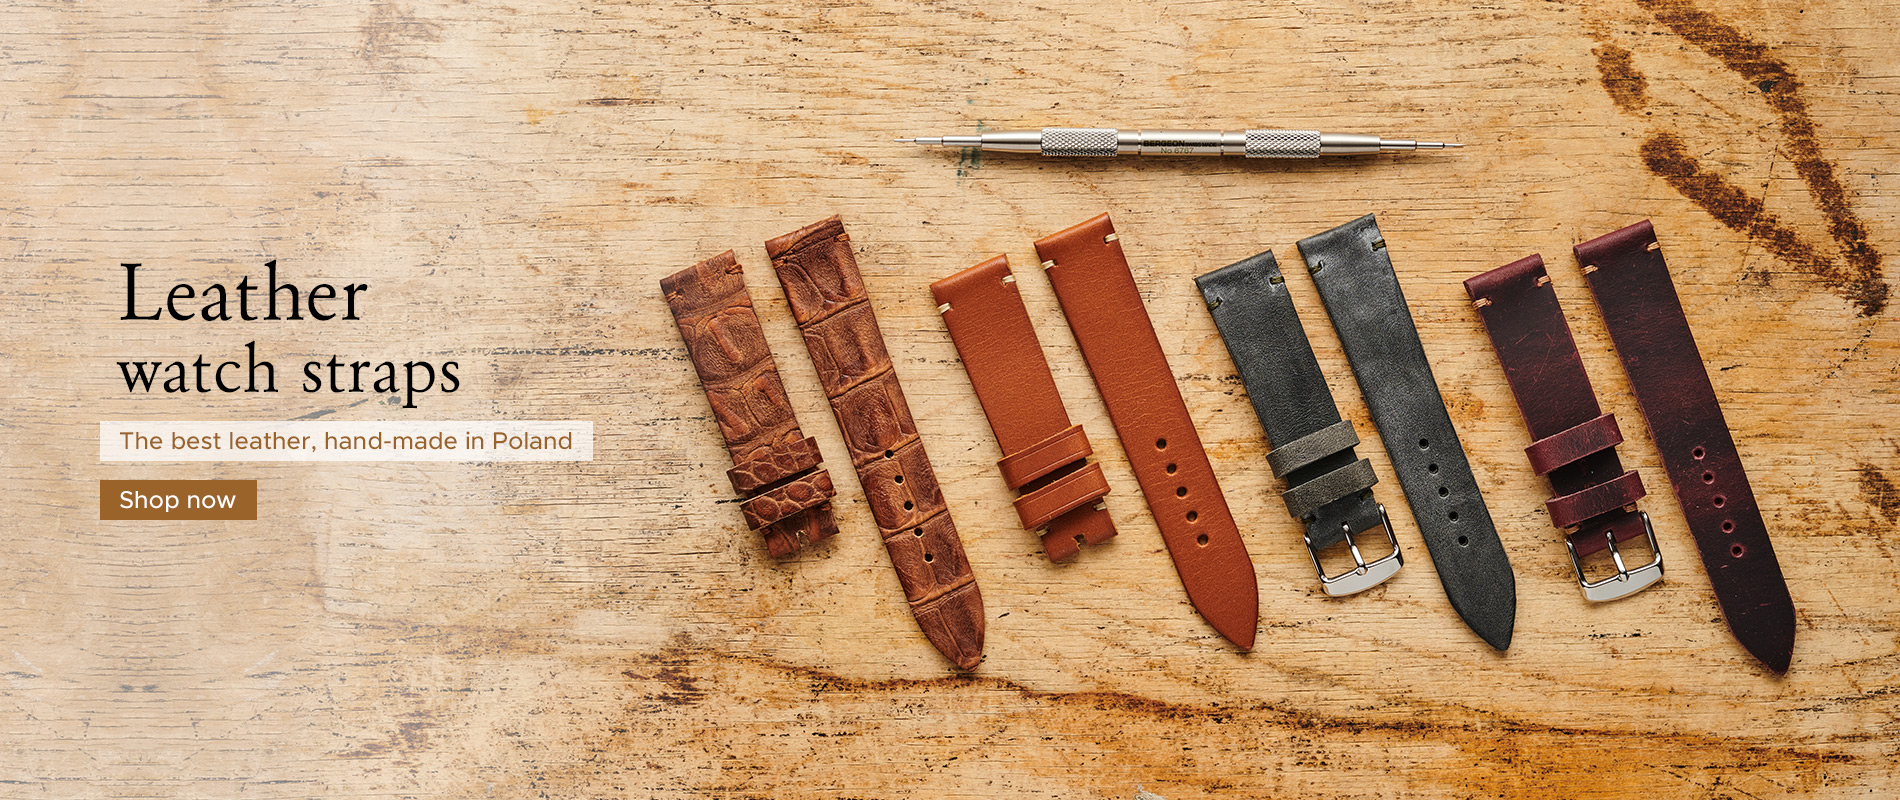 Hand-made watch straps